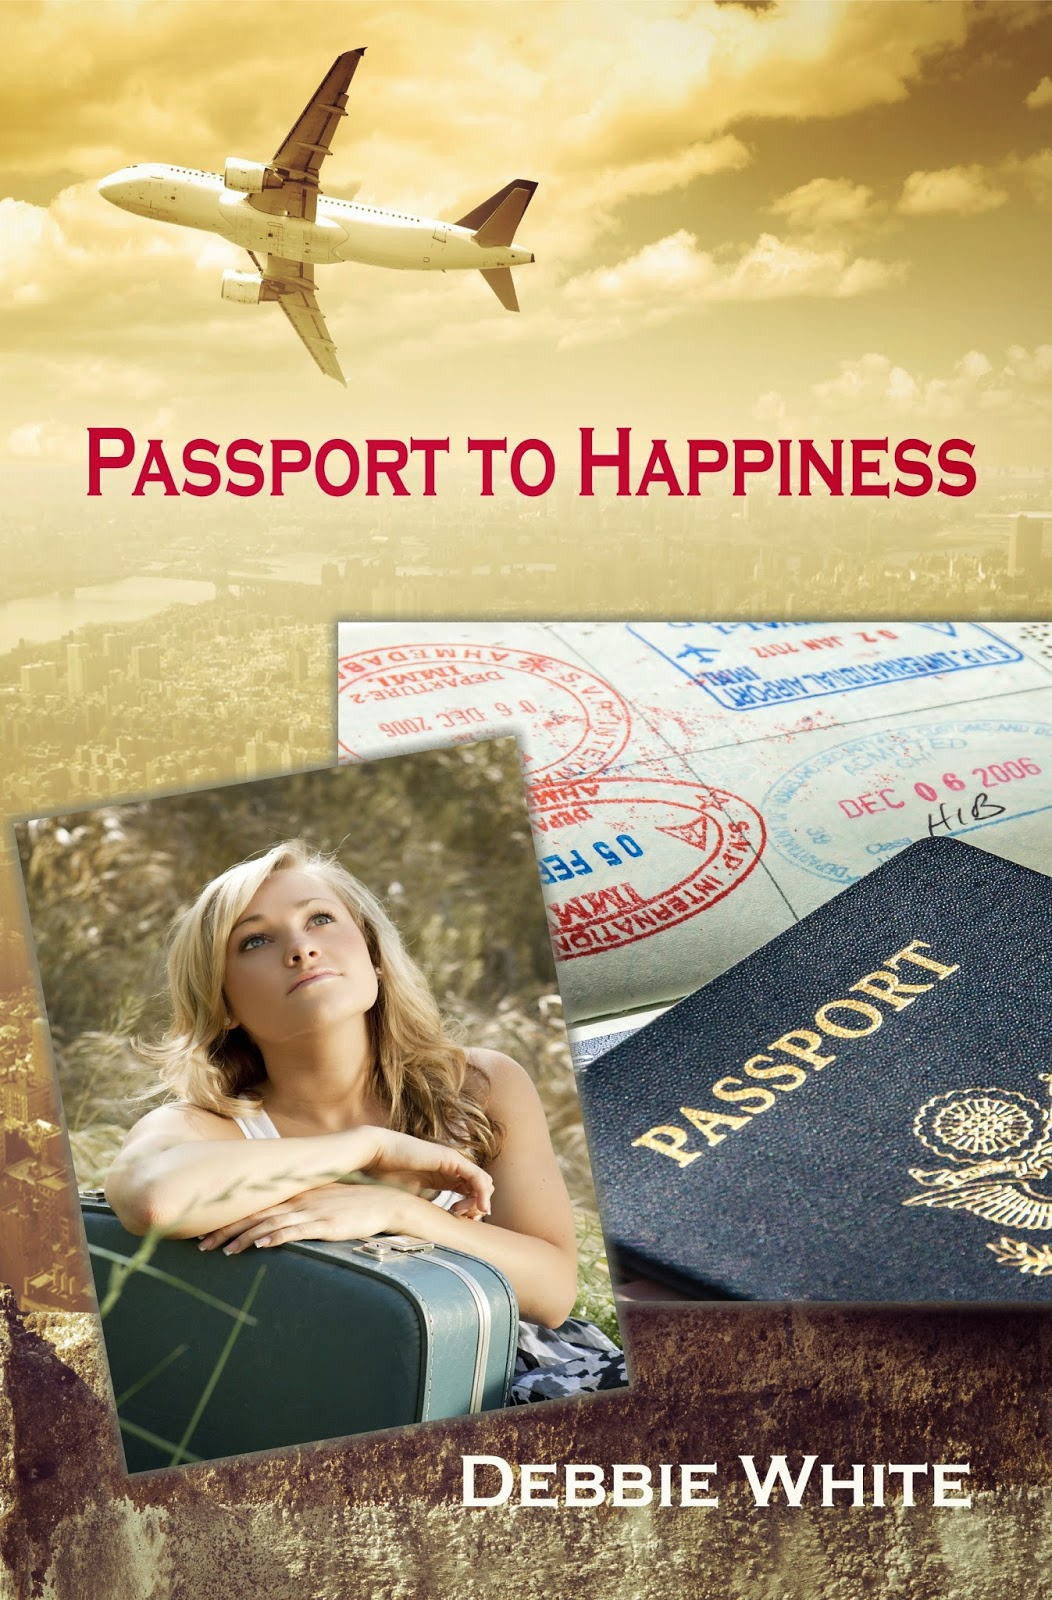 http://www.amazon.com/Passport-To-Happiness-Debbie-White/dp/1500579920/ref=tmm_pap_title_0?ie=UTF8&qid=1424411518&sr=1-2